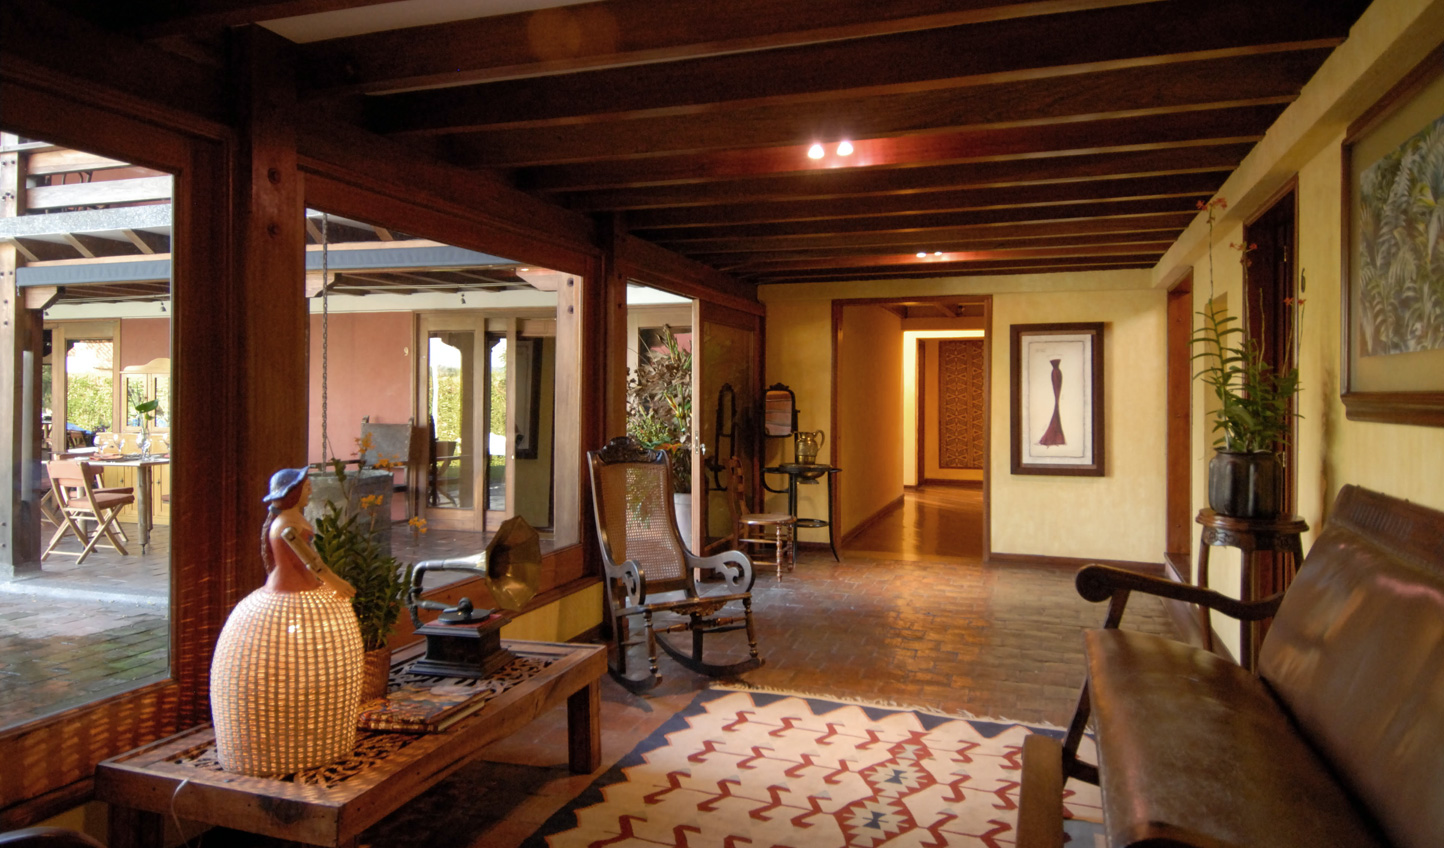 Beautiful traditional furnishings throughout the hotel